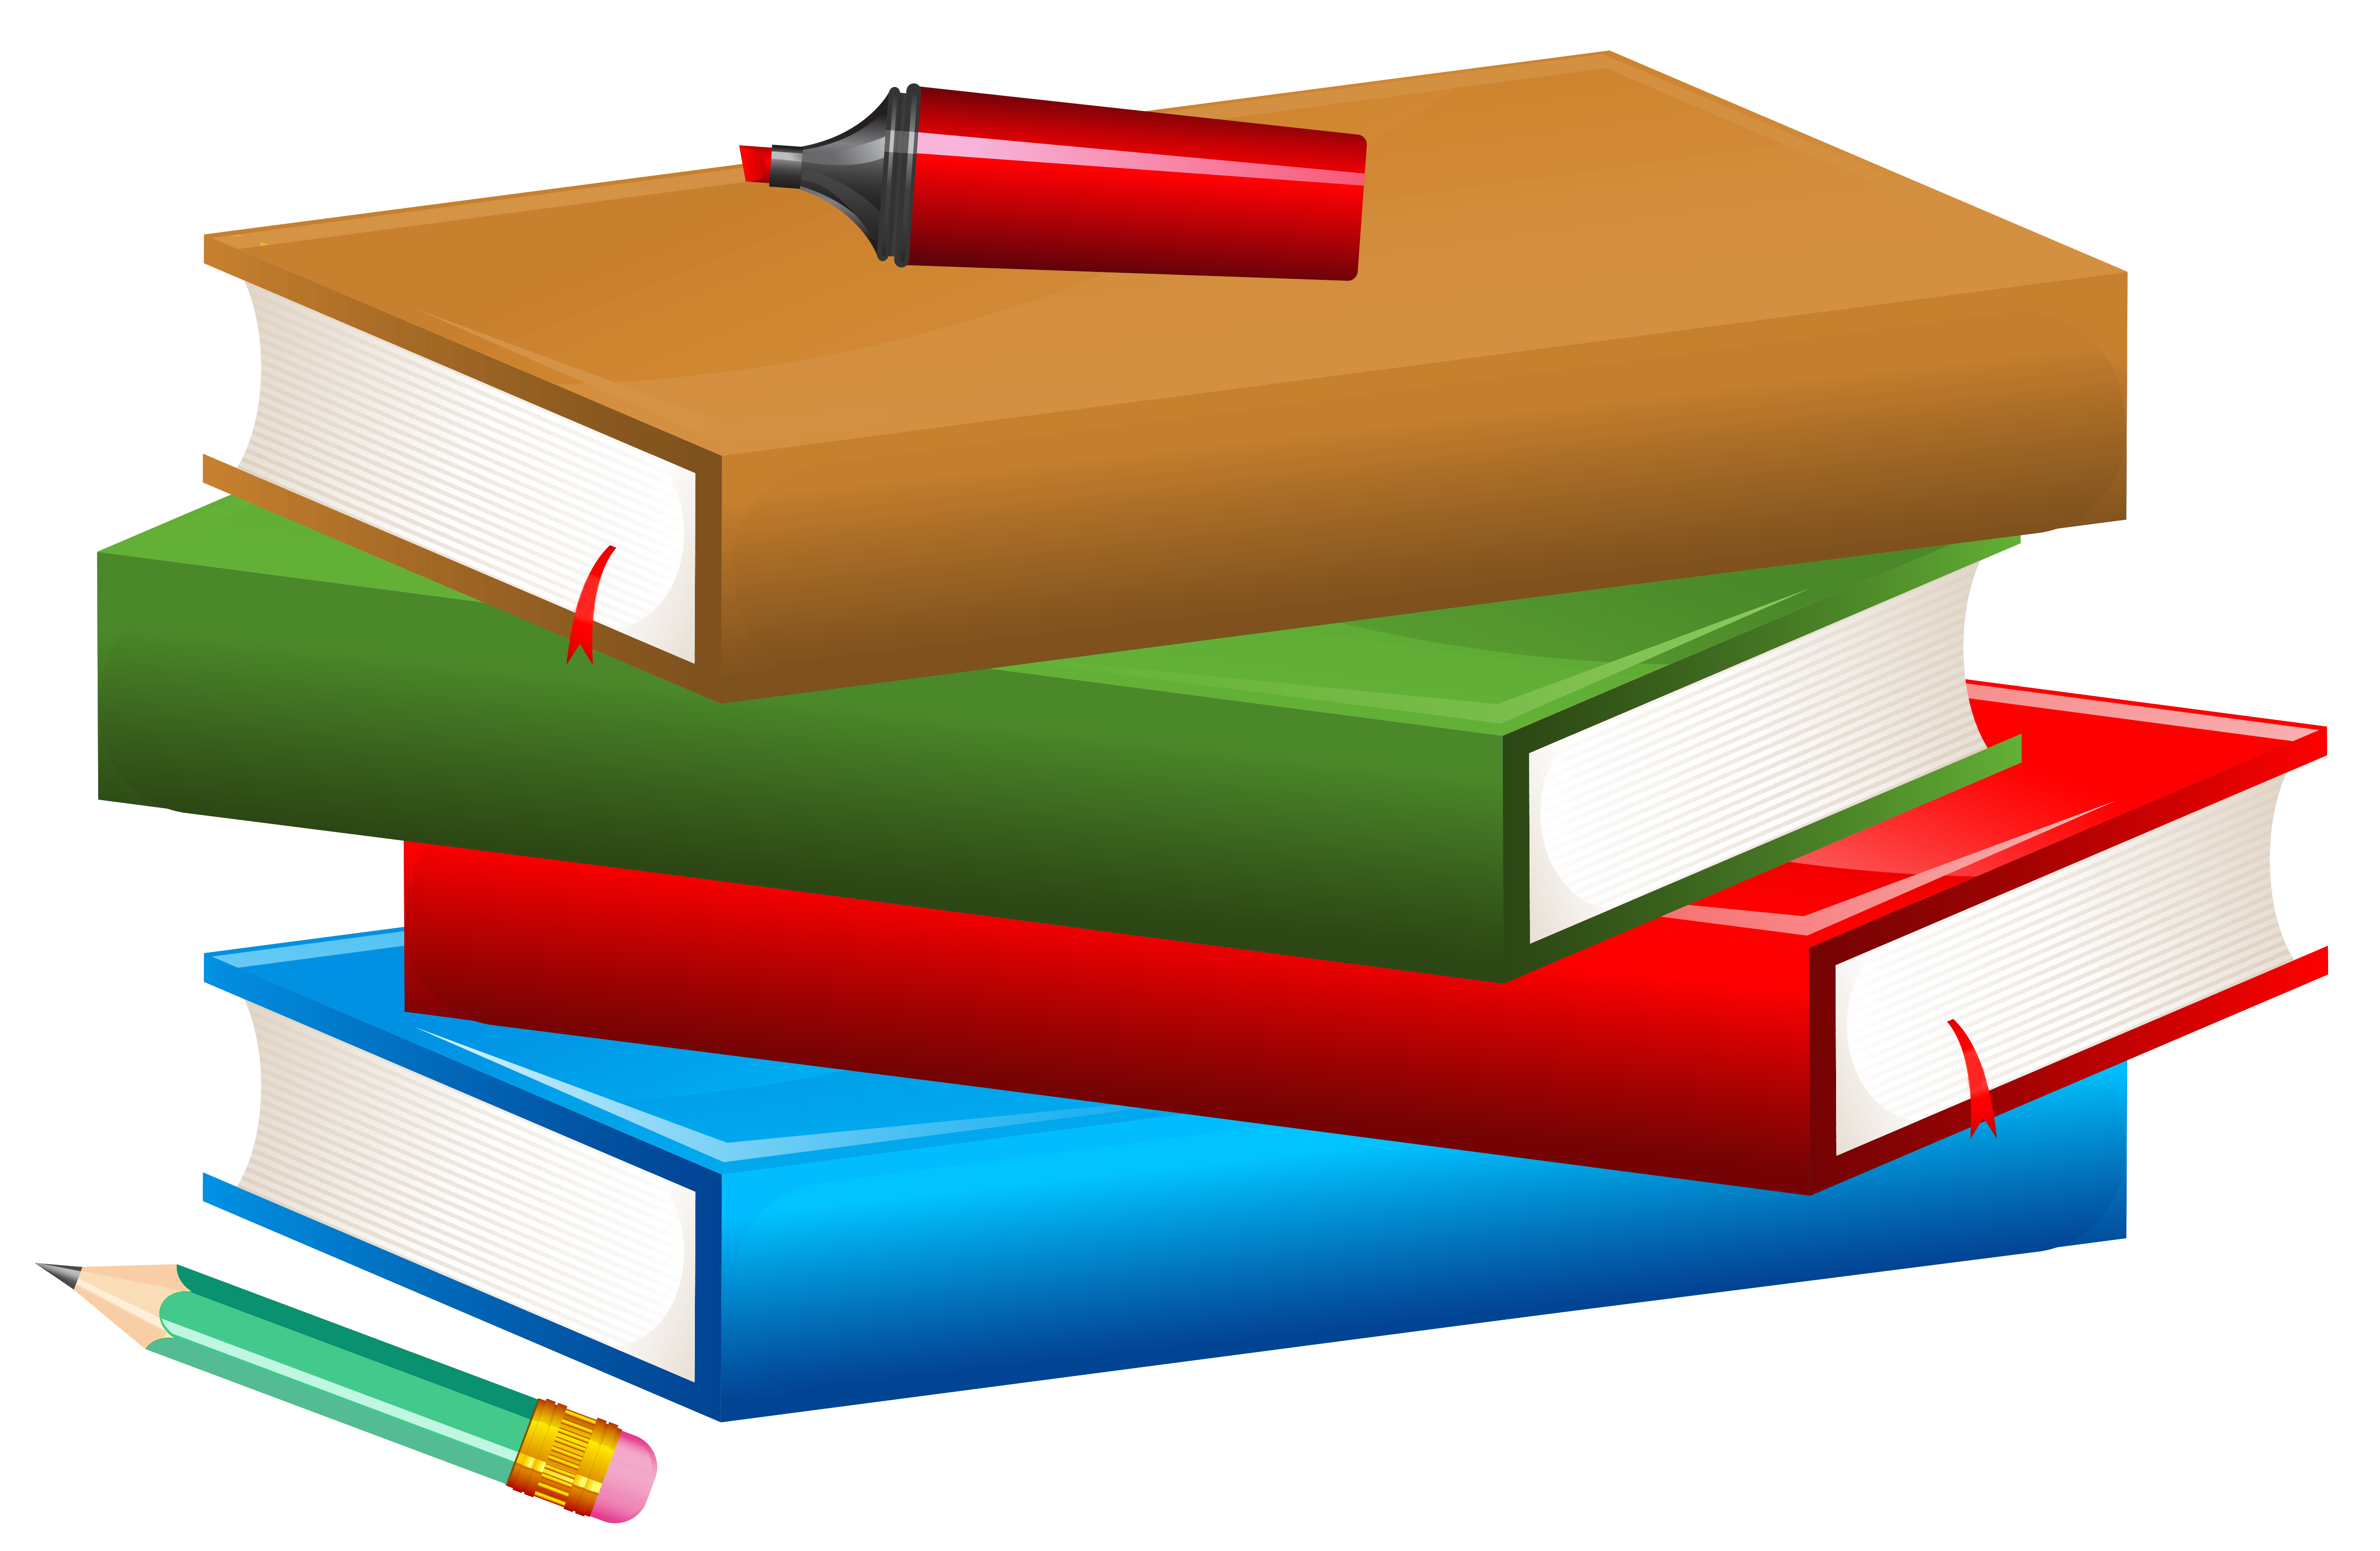 Books clipart png. With pencil and marker